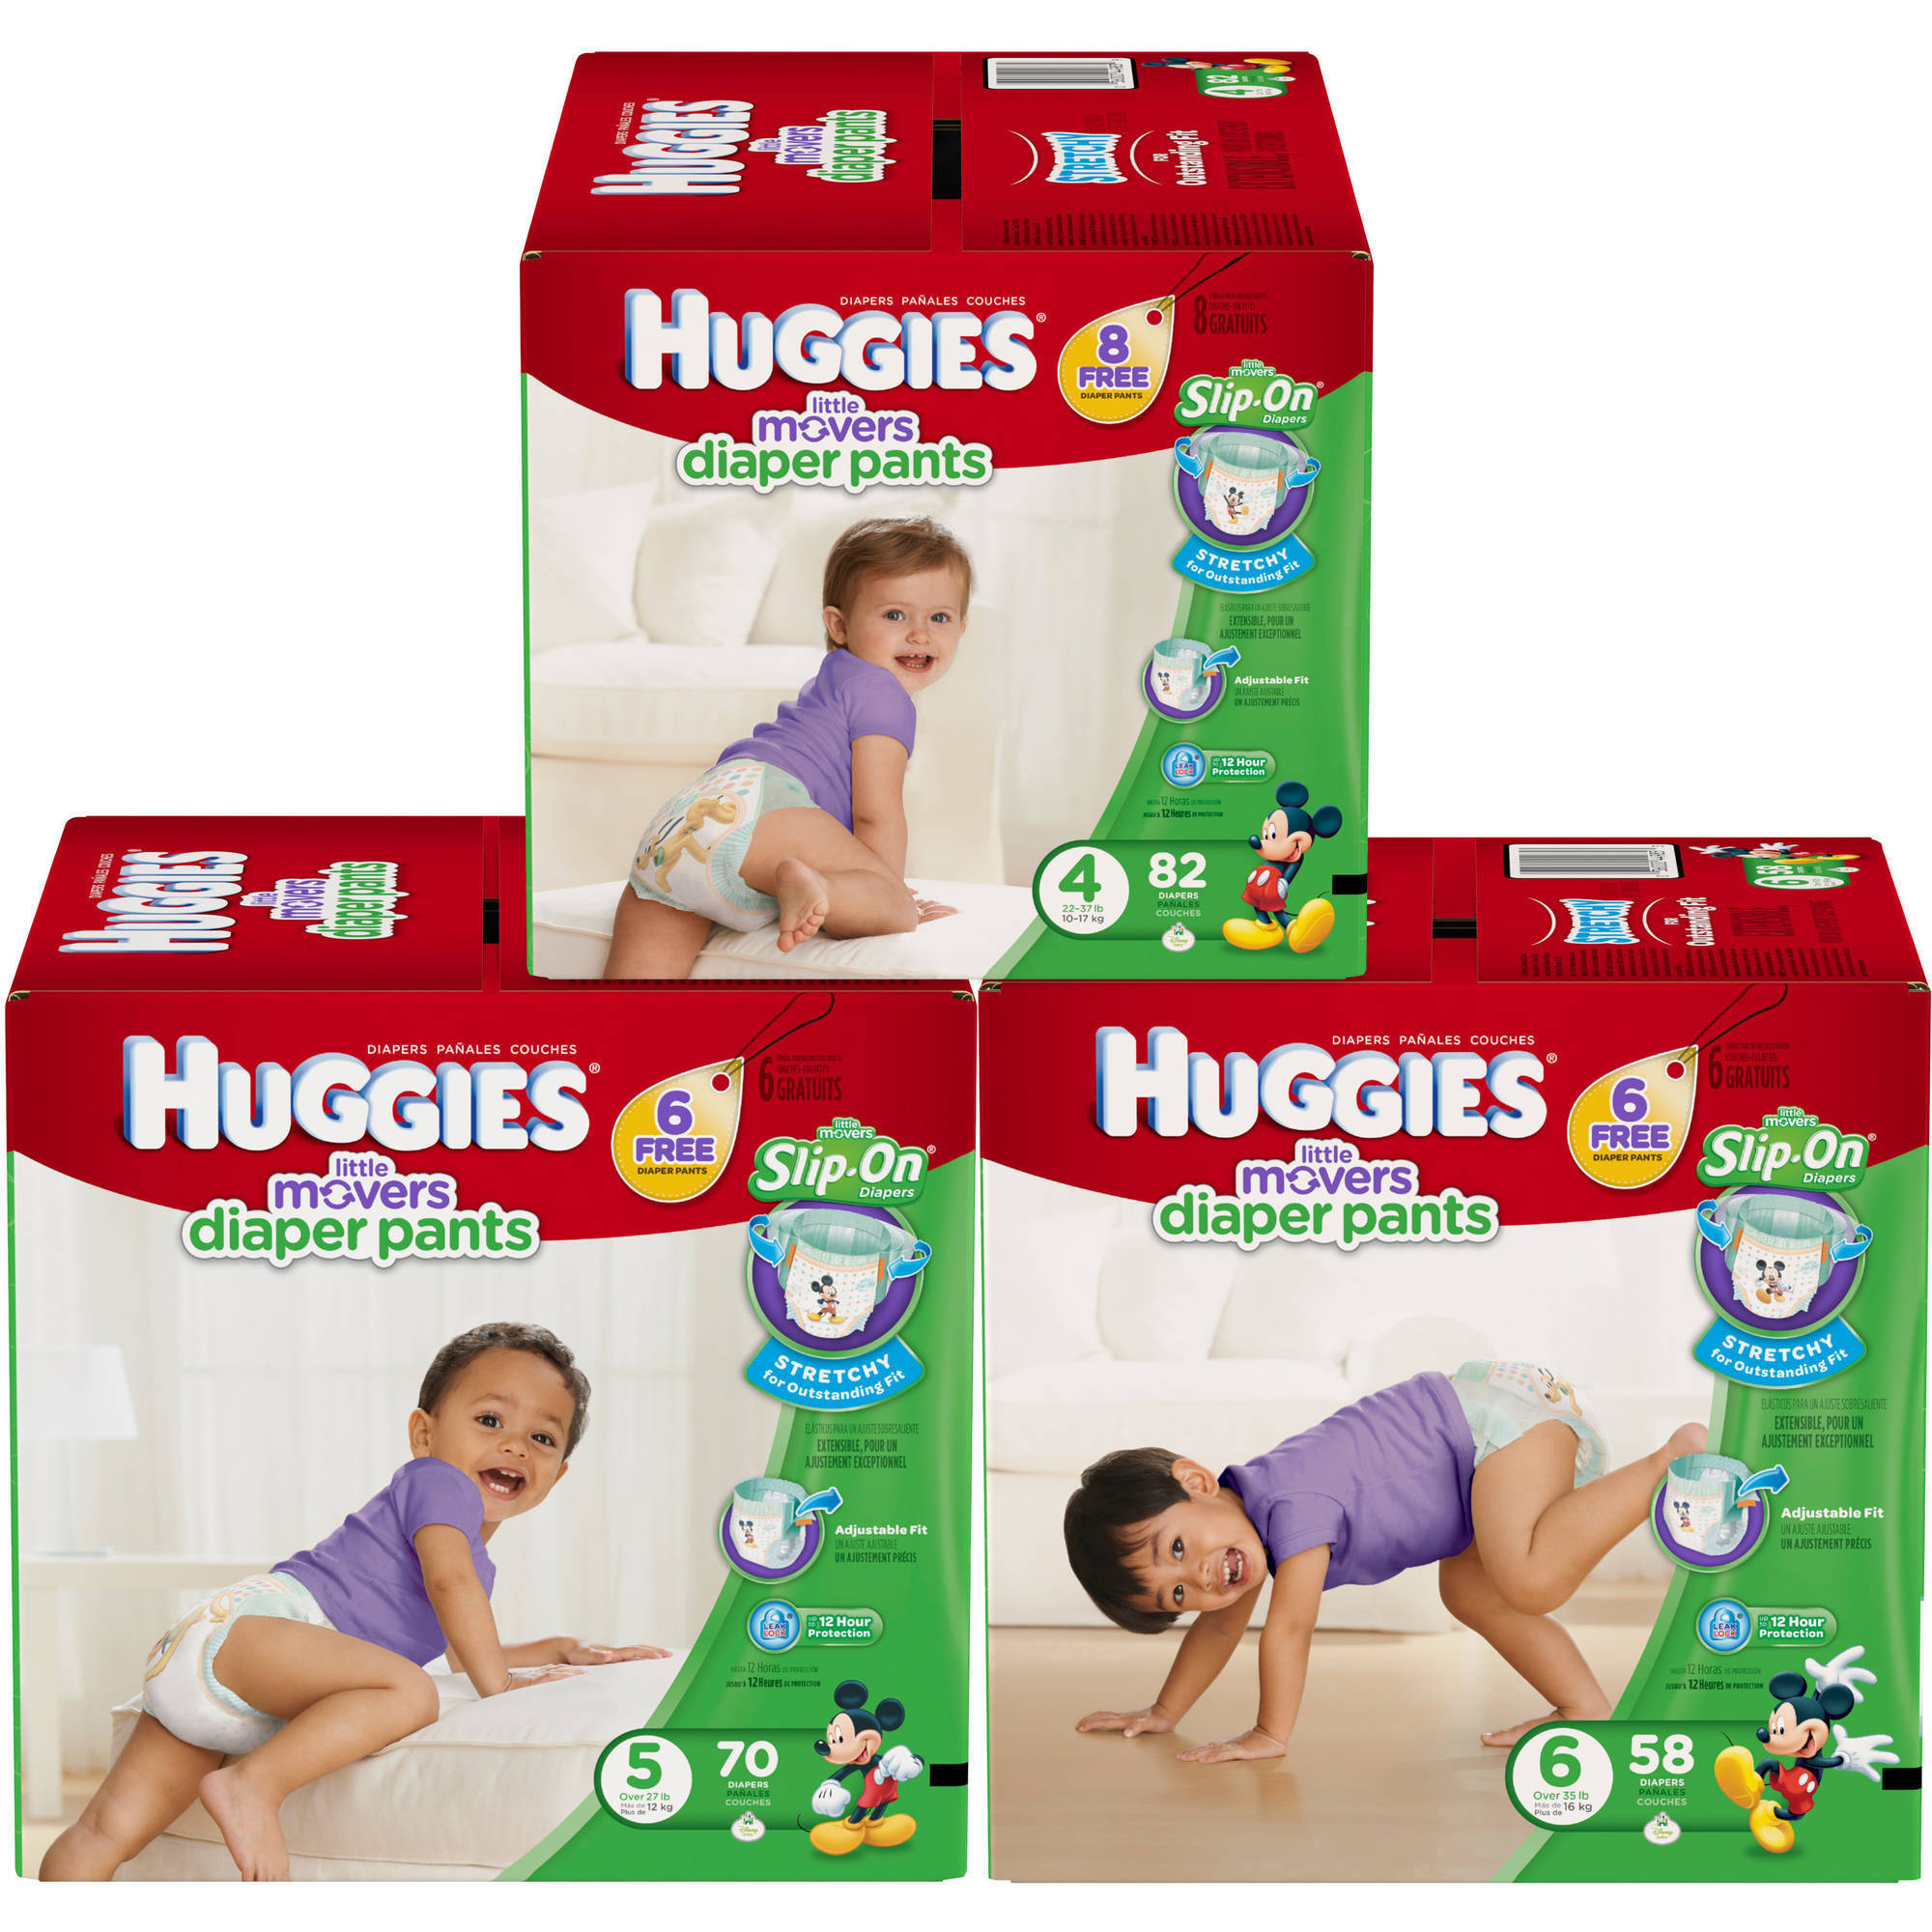 HUGGIES Little Movers Diaper Pants, Size 4, 82 count